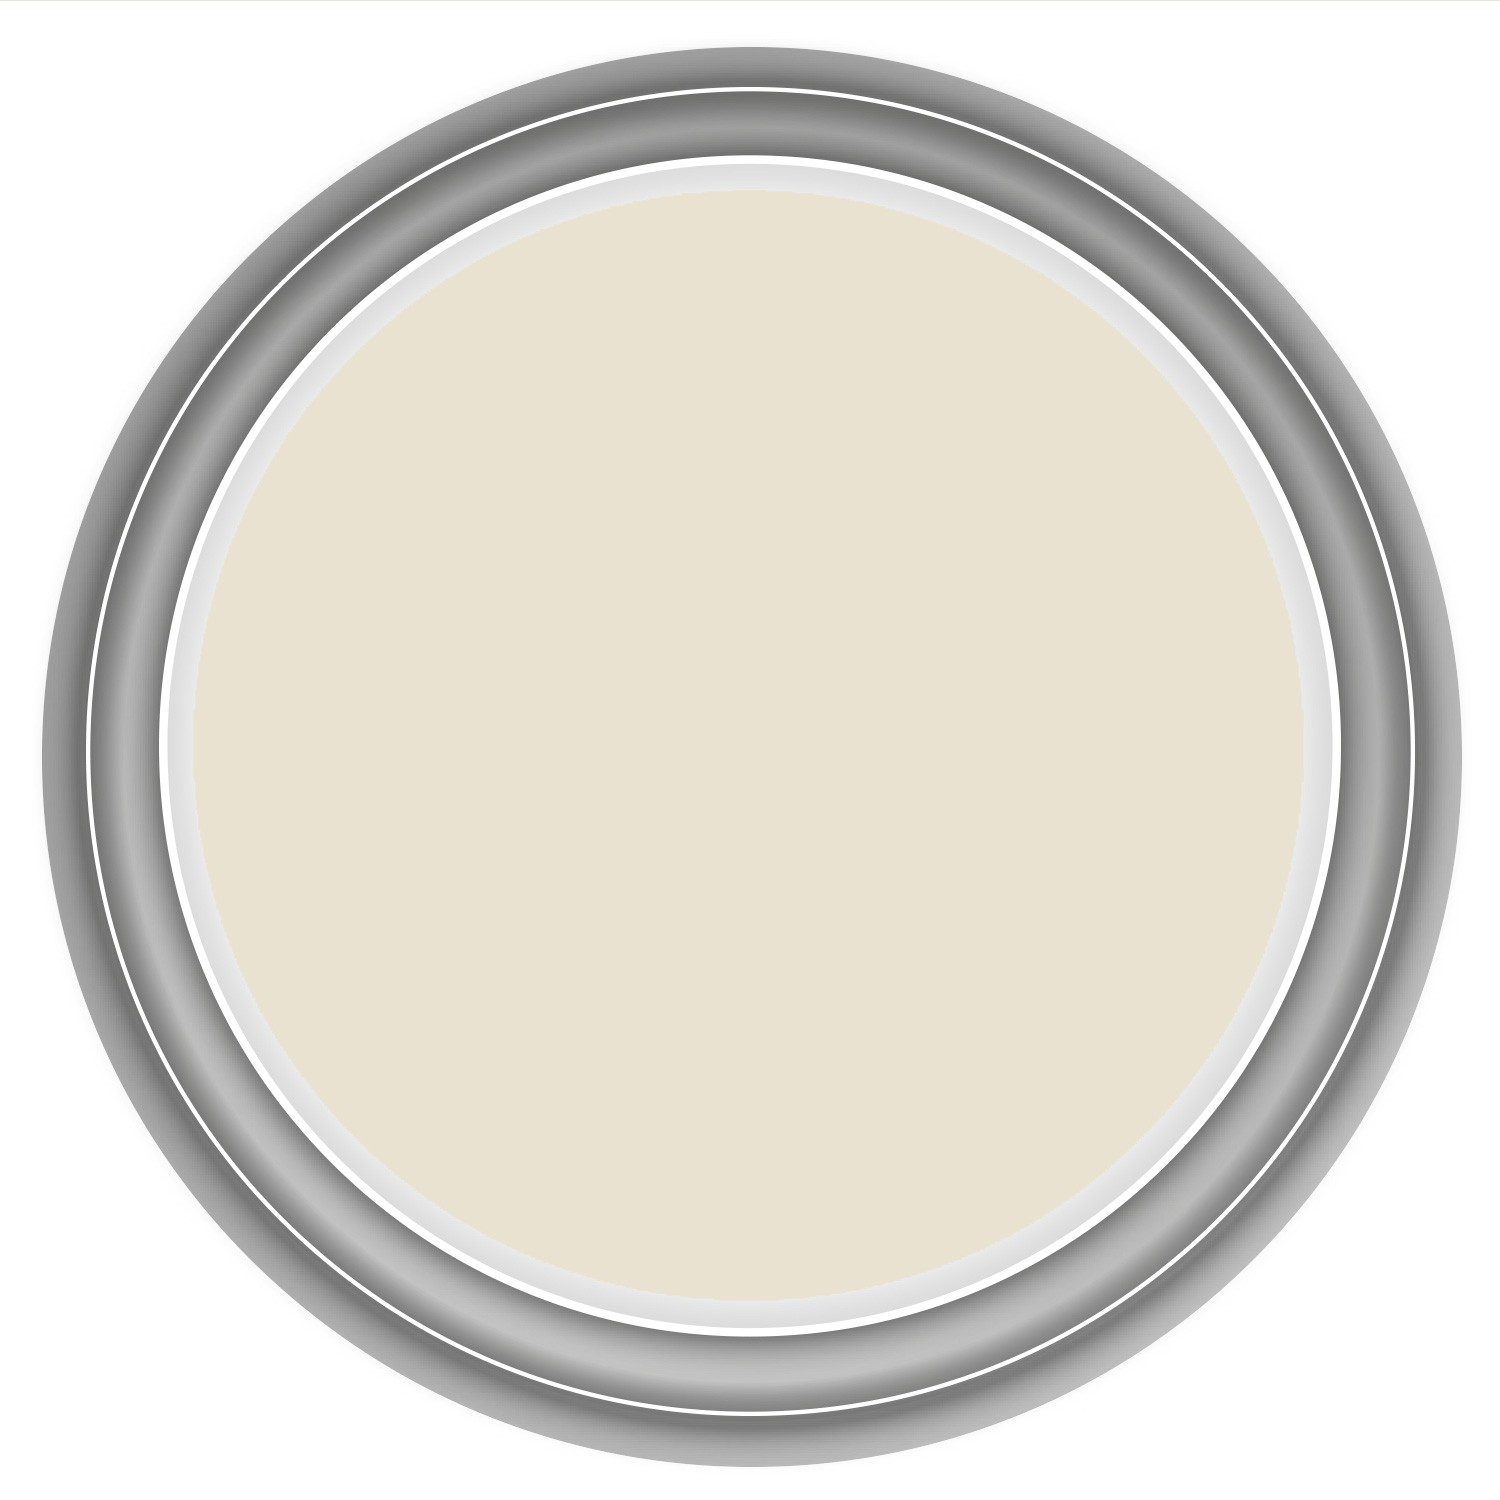 Farrow And Ball Skimming Stone Farrow And Ball 750ml Estate Eggshell No 241 Skimming Stone